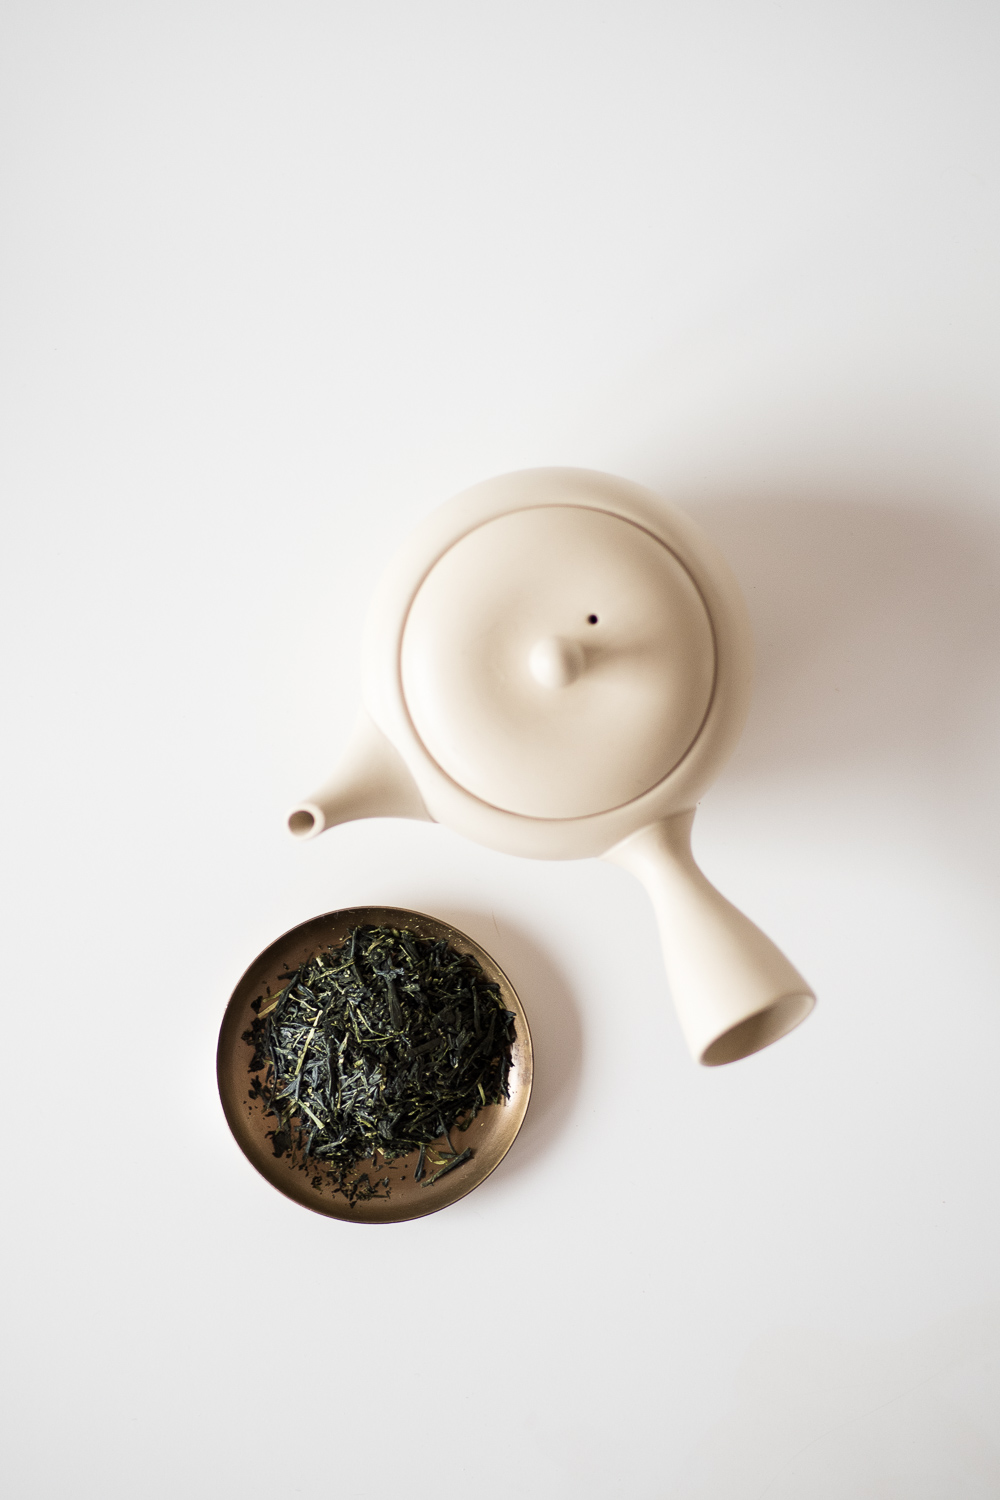 """- Brewing Japanese green tea is easy and fun, and can yield some delicious results.Senchado (""""the way of sencha"""") is the preferred way to prepare higher grades of green tea, particularly gyokuro and sencha, as it helps to concentrate their flavour and aroma, and enhance appreciation through multiple infusions. In this guide, we're using a condensed version of brewing, adapted from the Senchado ceremony. Hopefully, you find this style to be easy to perform and understand. It suits all kinds of Japanese teas.Similar to gongfu cha, this brewing style offers a wonderful way to appreciate tea, whether for your everyday ritual of personal focus and introspection, or for welcoming guests to Japanese tea."""